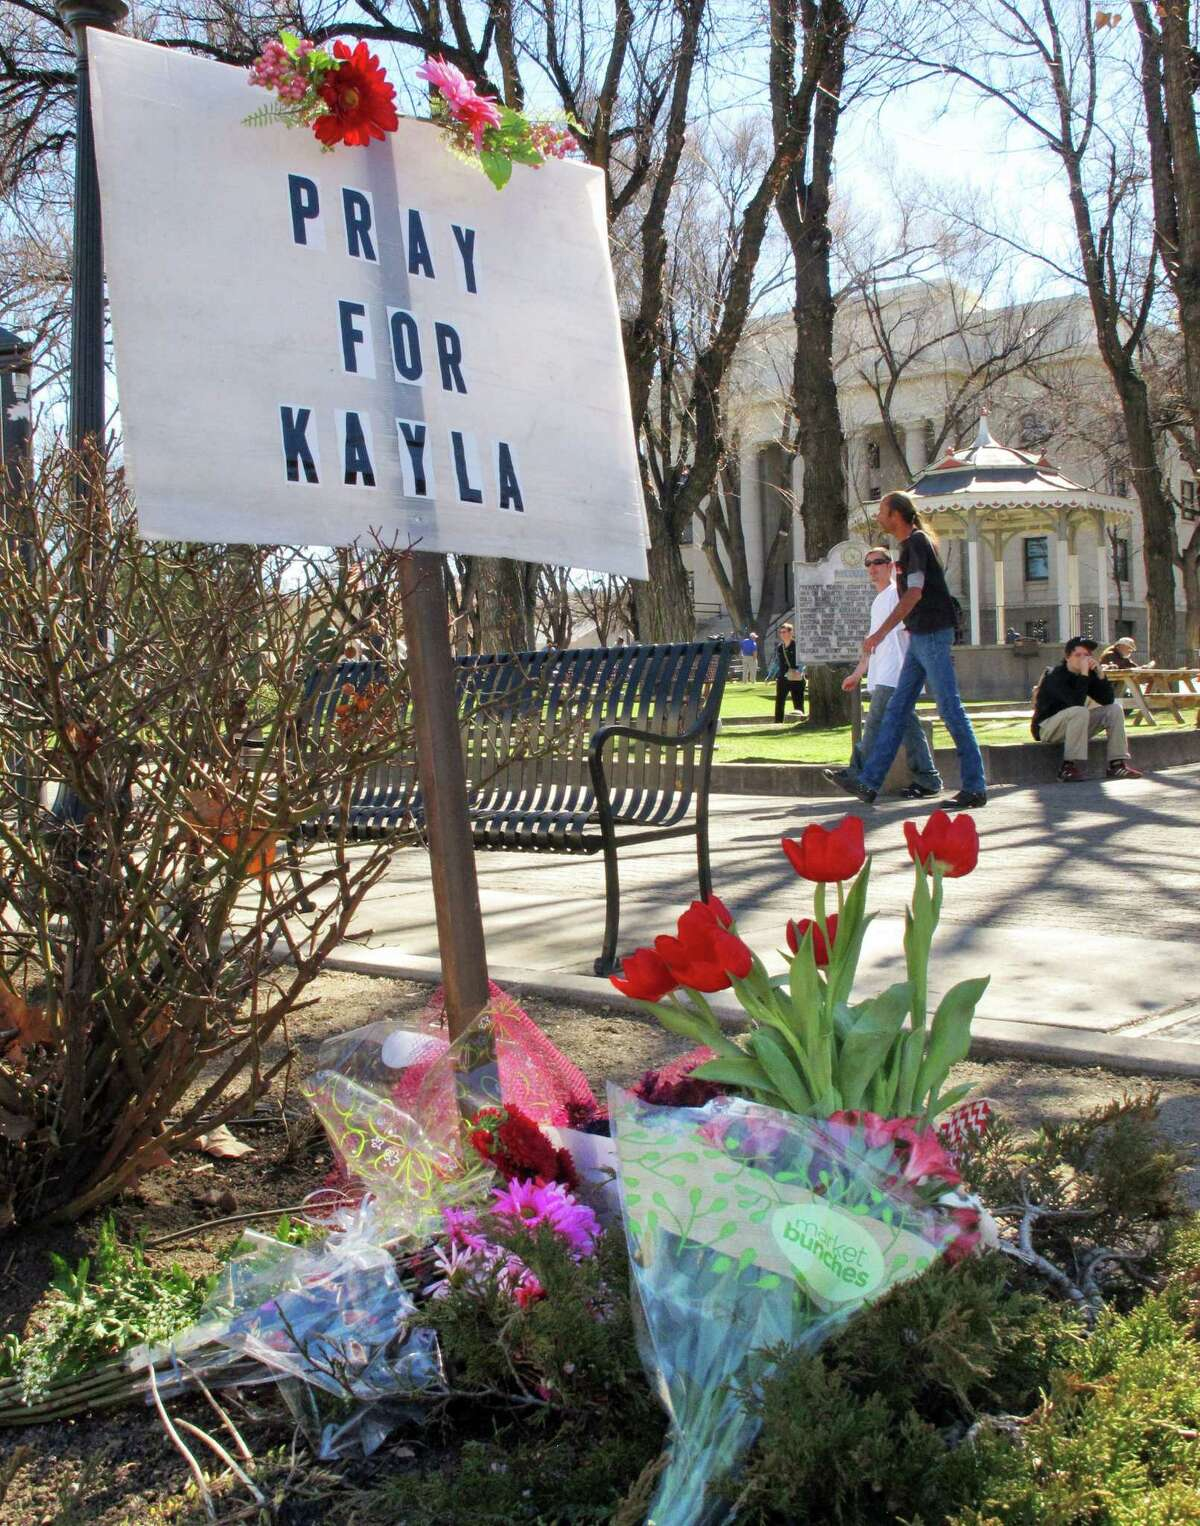 FILE -- In this Tues., Feb. 10, 2015 file photo, a small memorial honoring American hostage Kayla Mueller is on display at a corner of courthouse plaza in Prescott, Ariz. Omar Alkhani, boyfriend of Mueller, spoke to The Associated Press on Sunday, Feb. 15, 2015, via webcam from Turkey in one of his first interviews. Alkhani talked about how he met Mueller in 2010 and the last time he saw her in 2013 as a prisoner of the Islamic State group. The U.S. government and Muellerís family confirmed her death last week. (AP Photo/Felicia Fonseca, File)